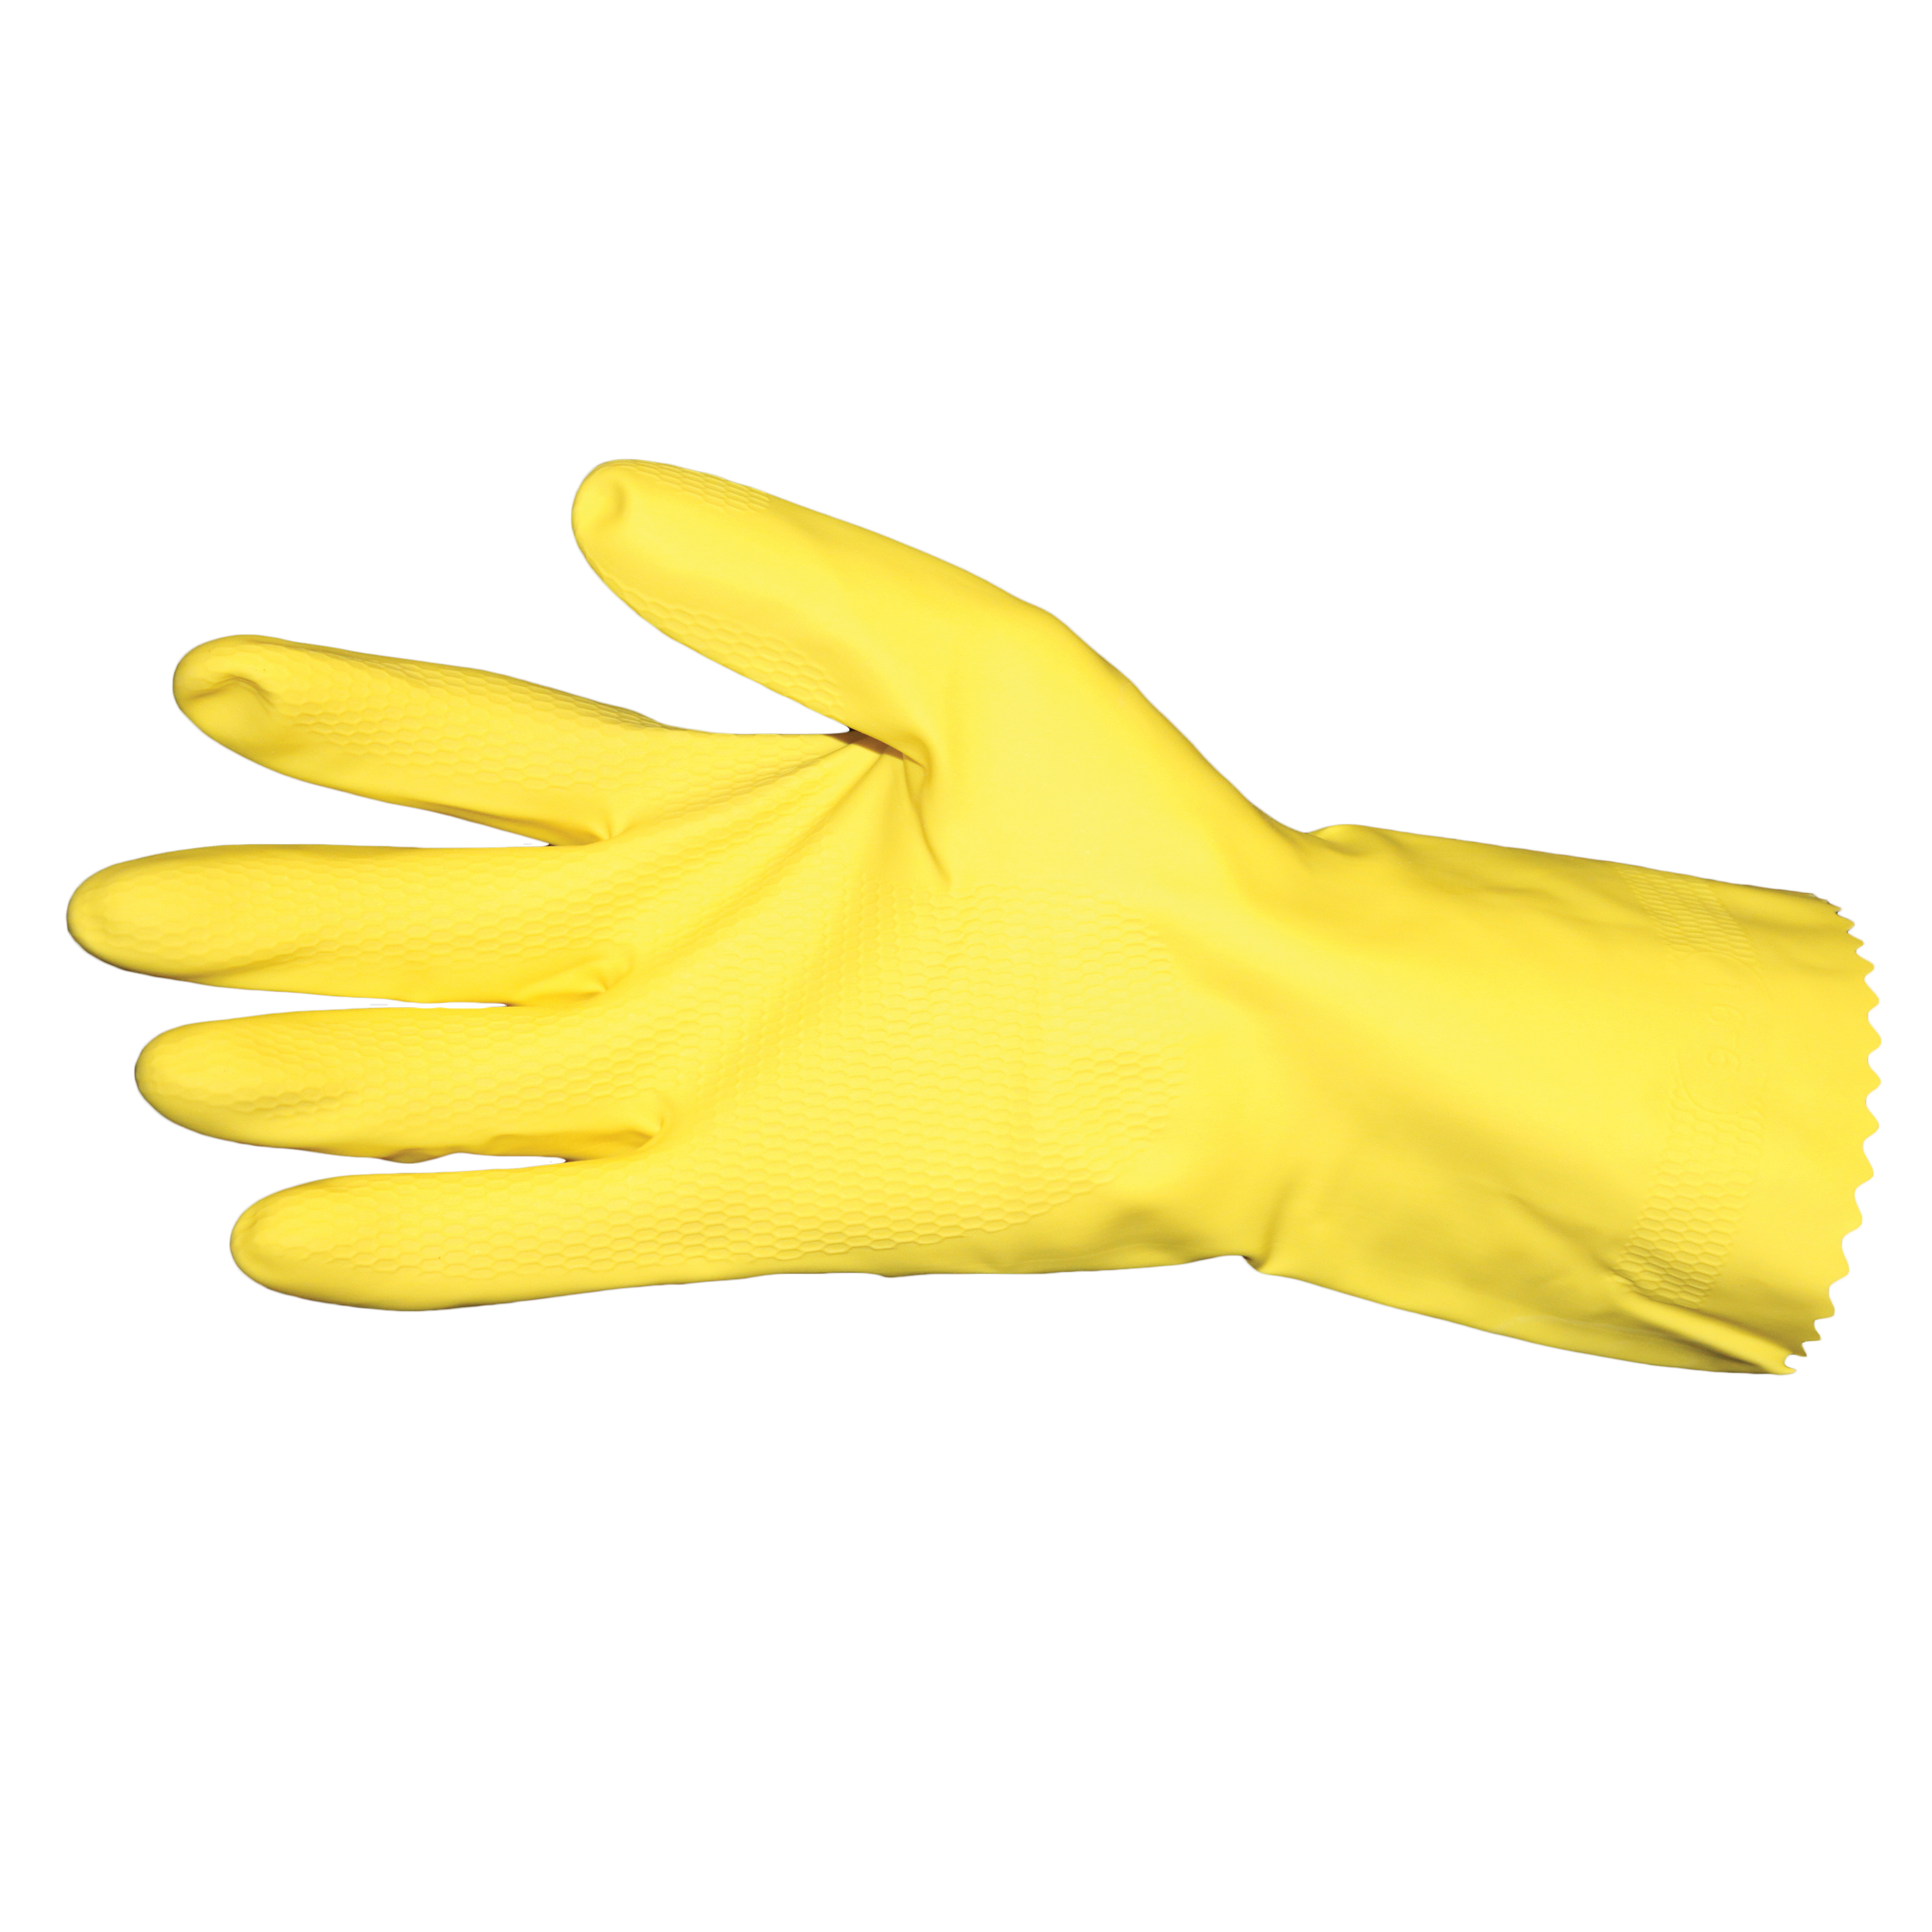 Impact Products 8448S gloves, dishwashing / cleaning